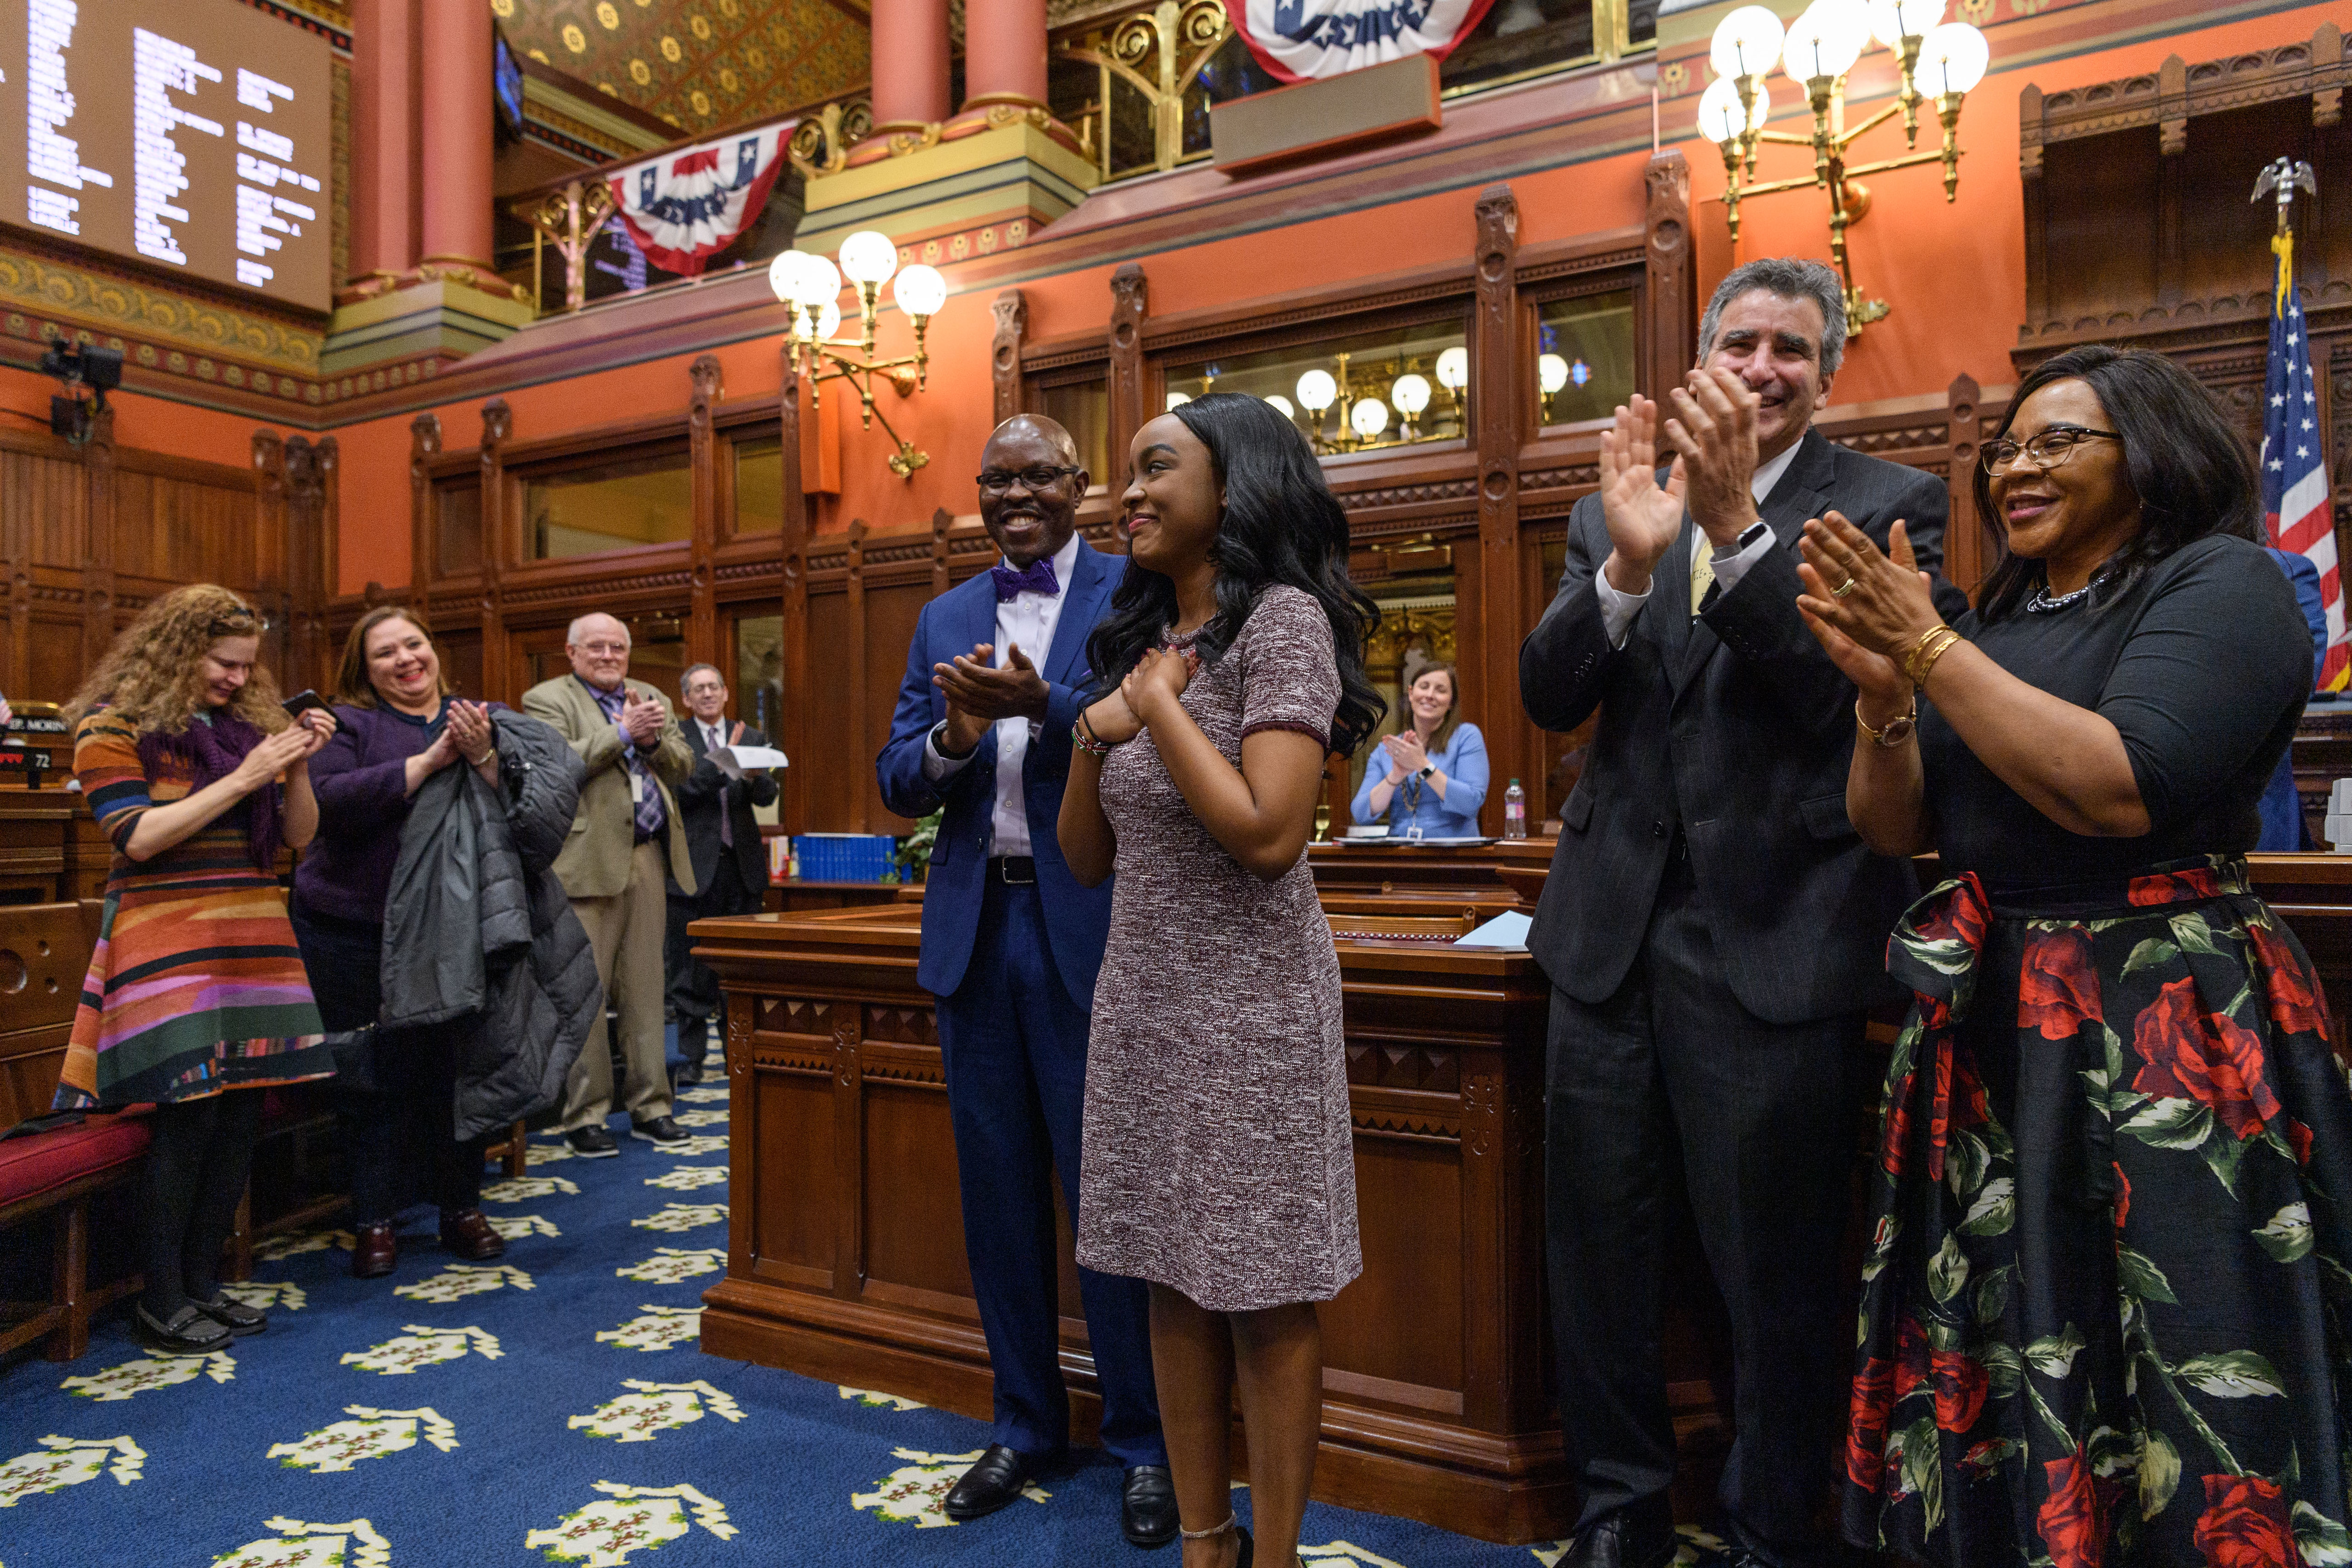 Rhodes scholar Wanjiku Gatheru '20 (CAHNR) receives applause from the State House of Representatives in Hartford on Dec. 18, 2019.